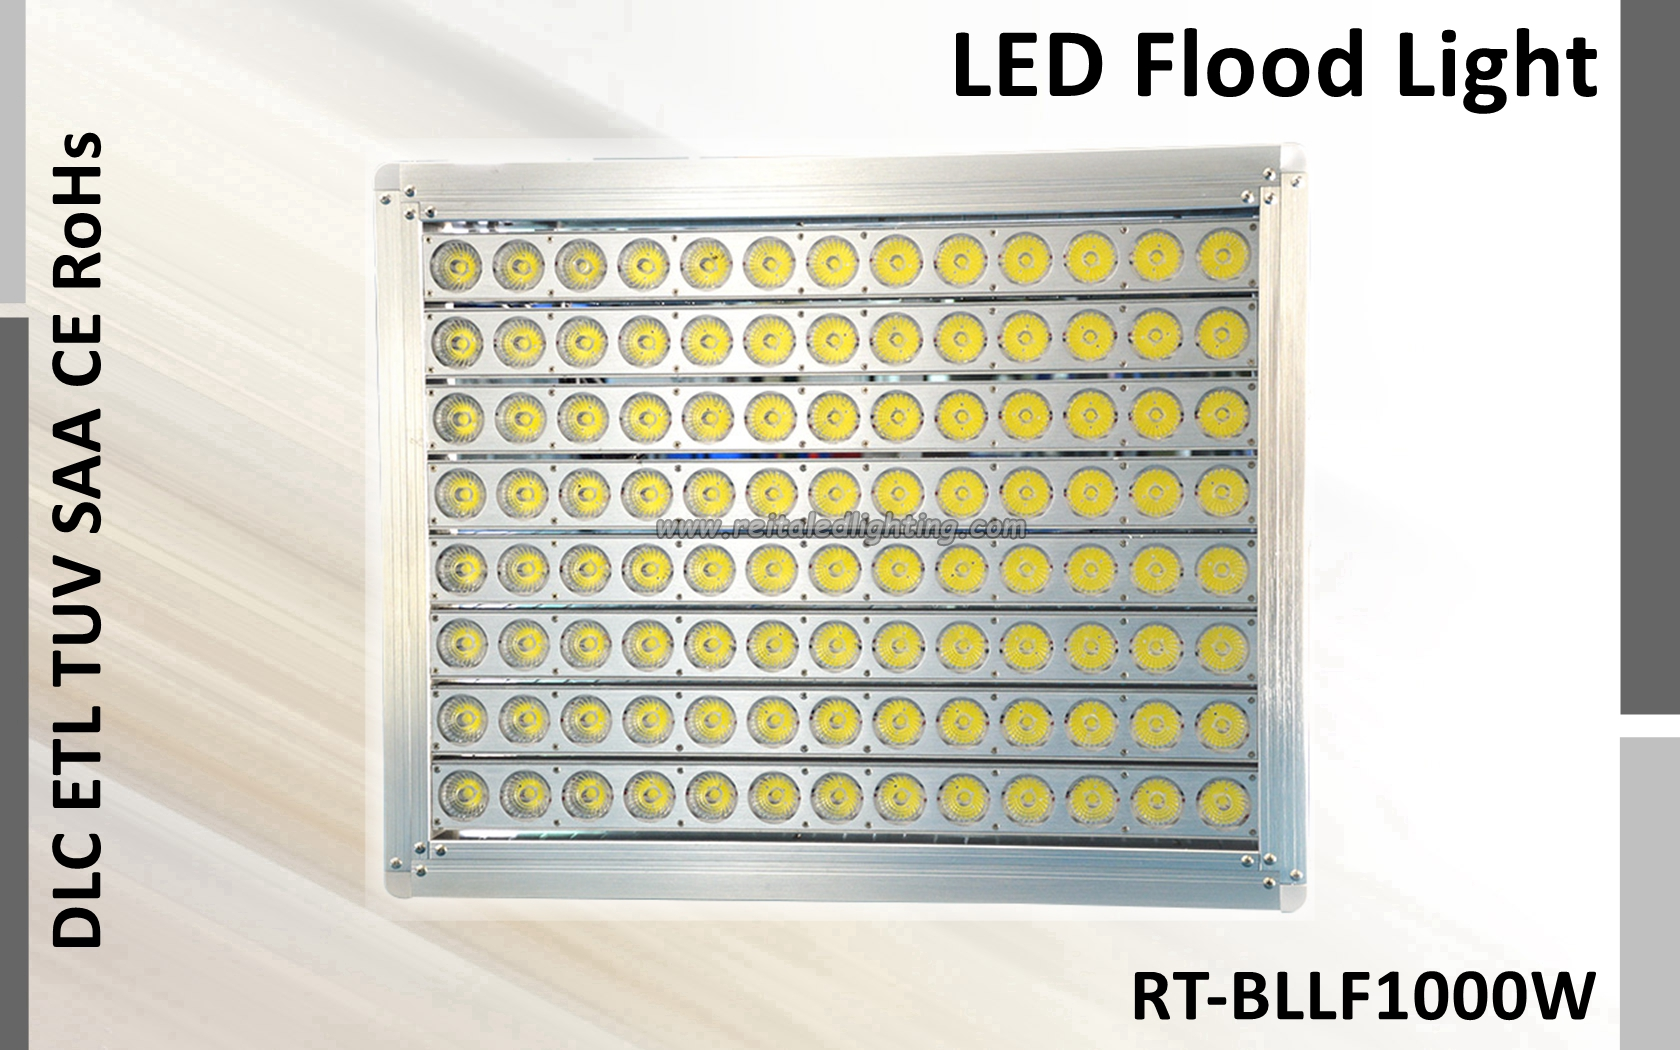 Neue LED Flood Light 1000Watt